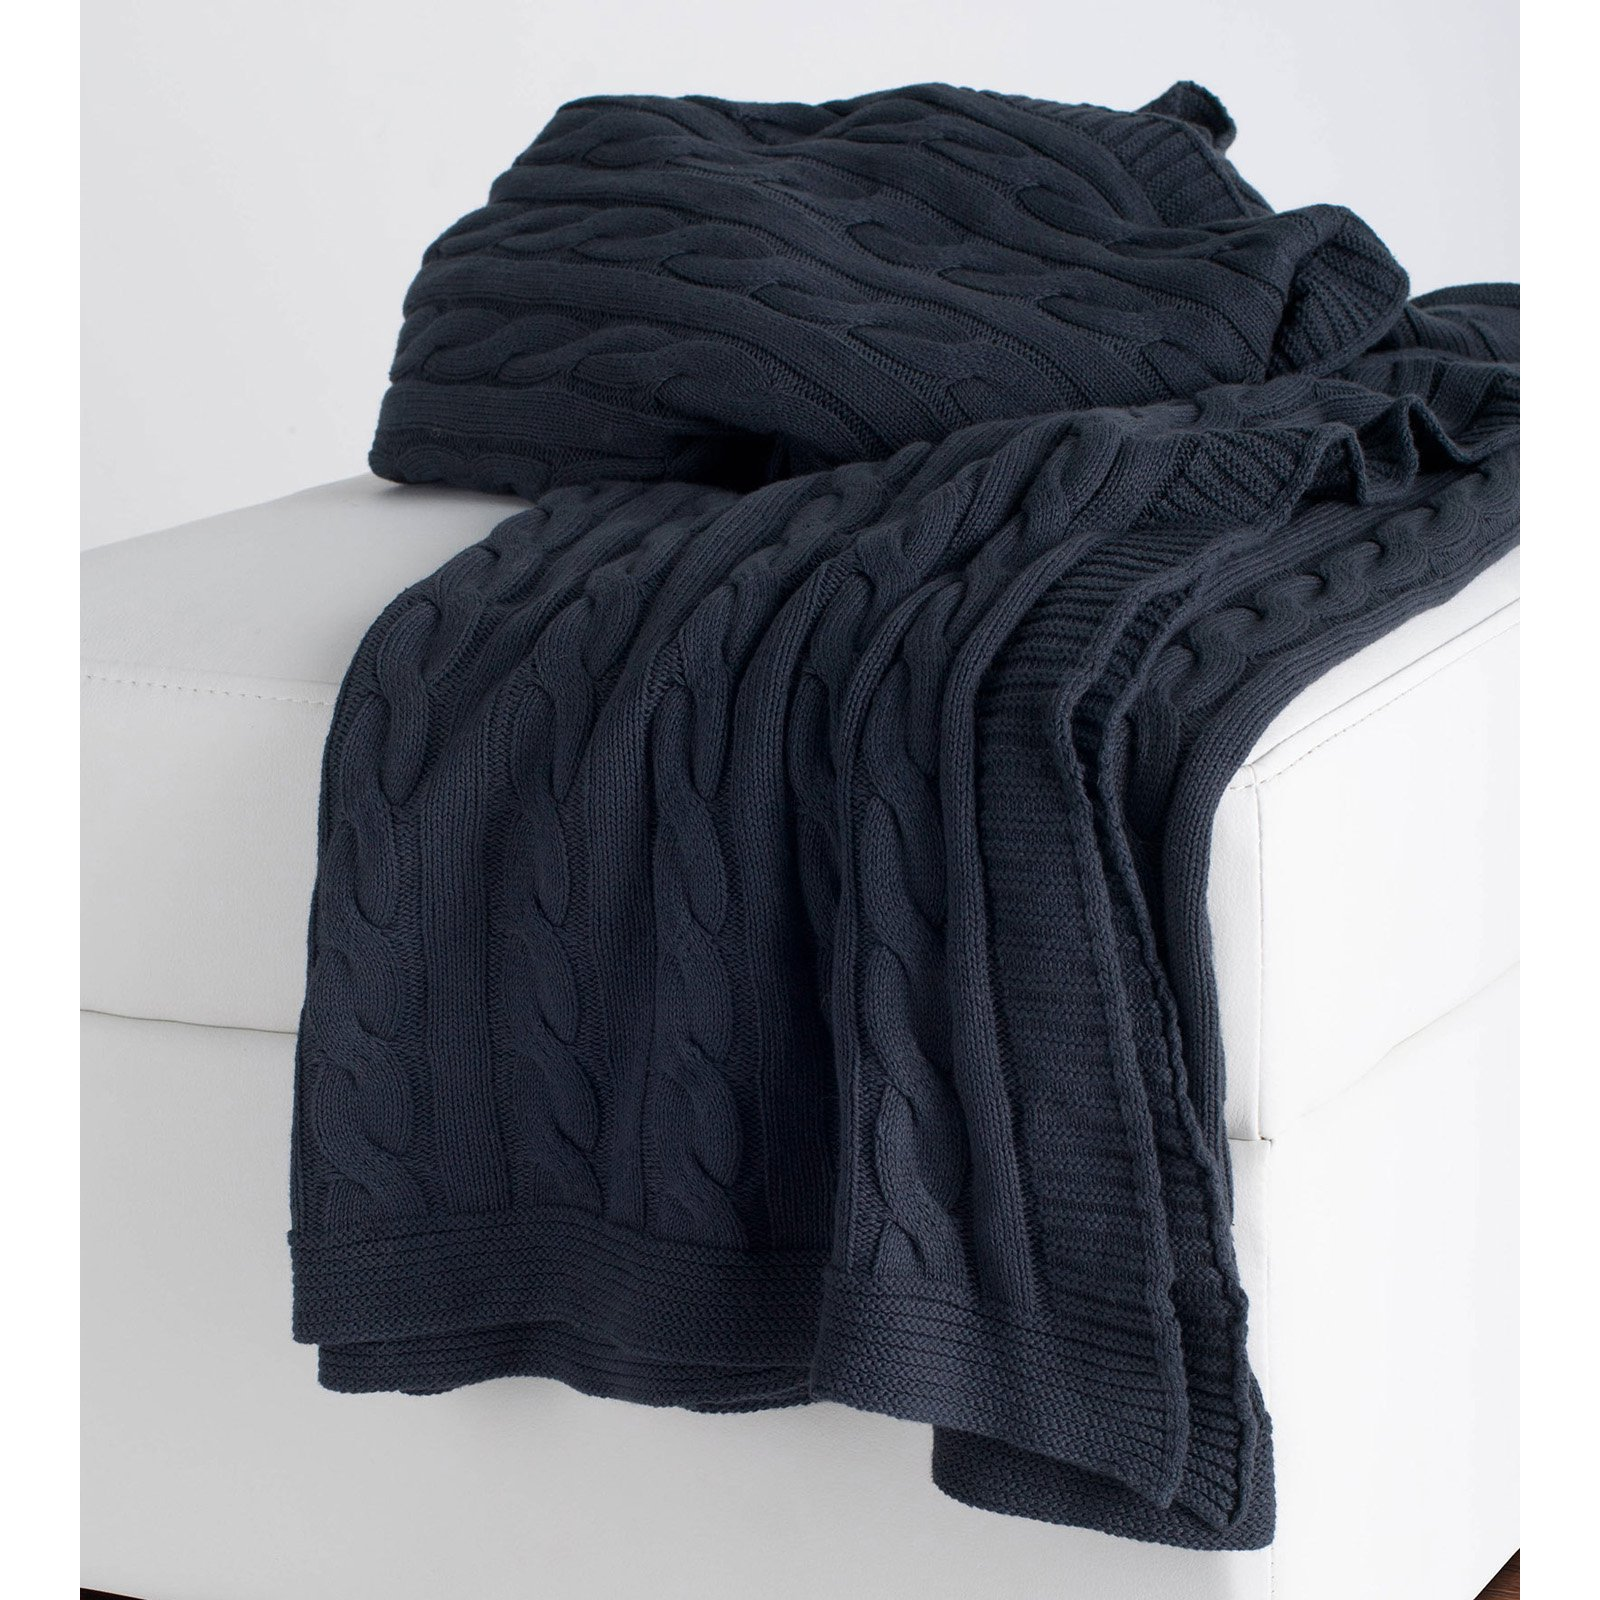 "Rizzy Home TH0155 50"" x 60"" Cable Knit Sweater Fabric Throw"